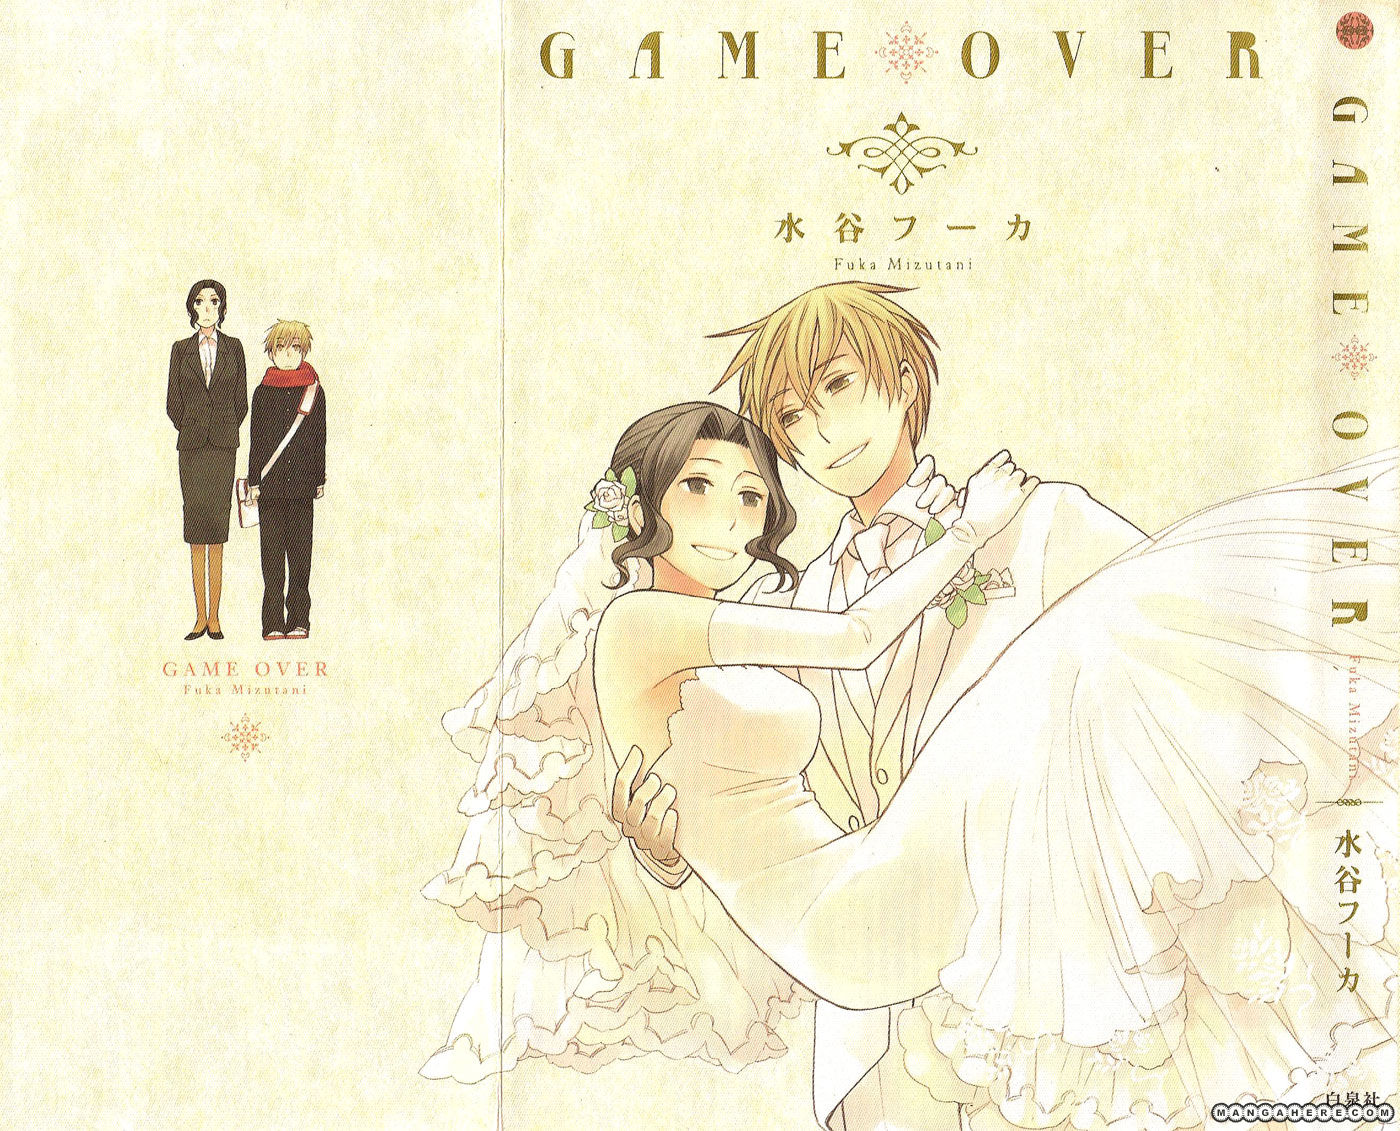 Game Over (MIZUTANI Fuka) 0.1 Page 1